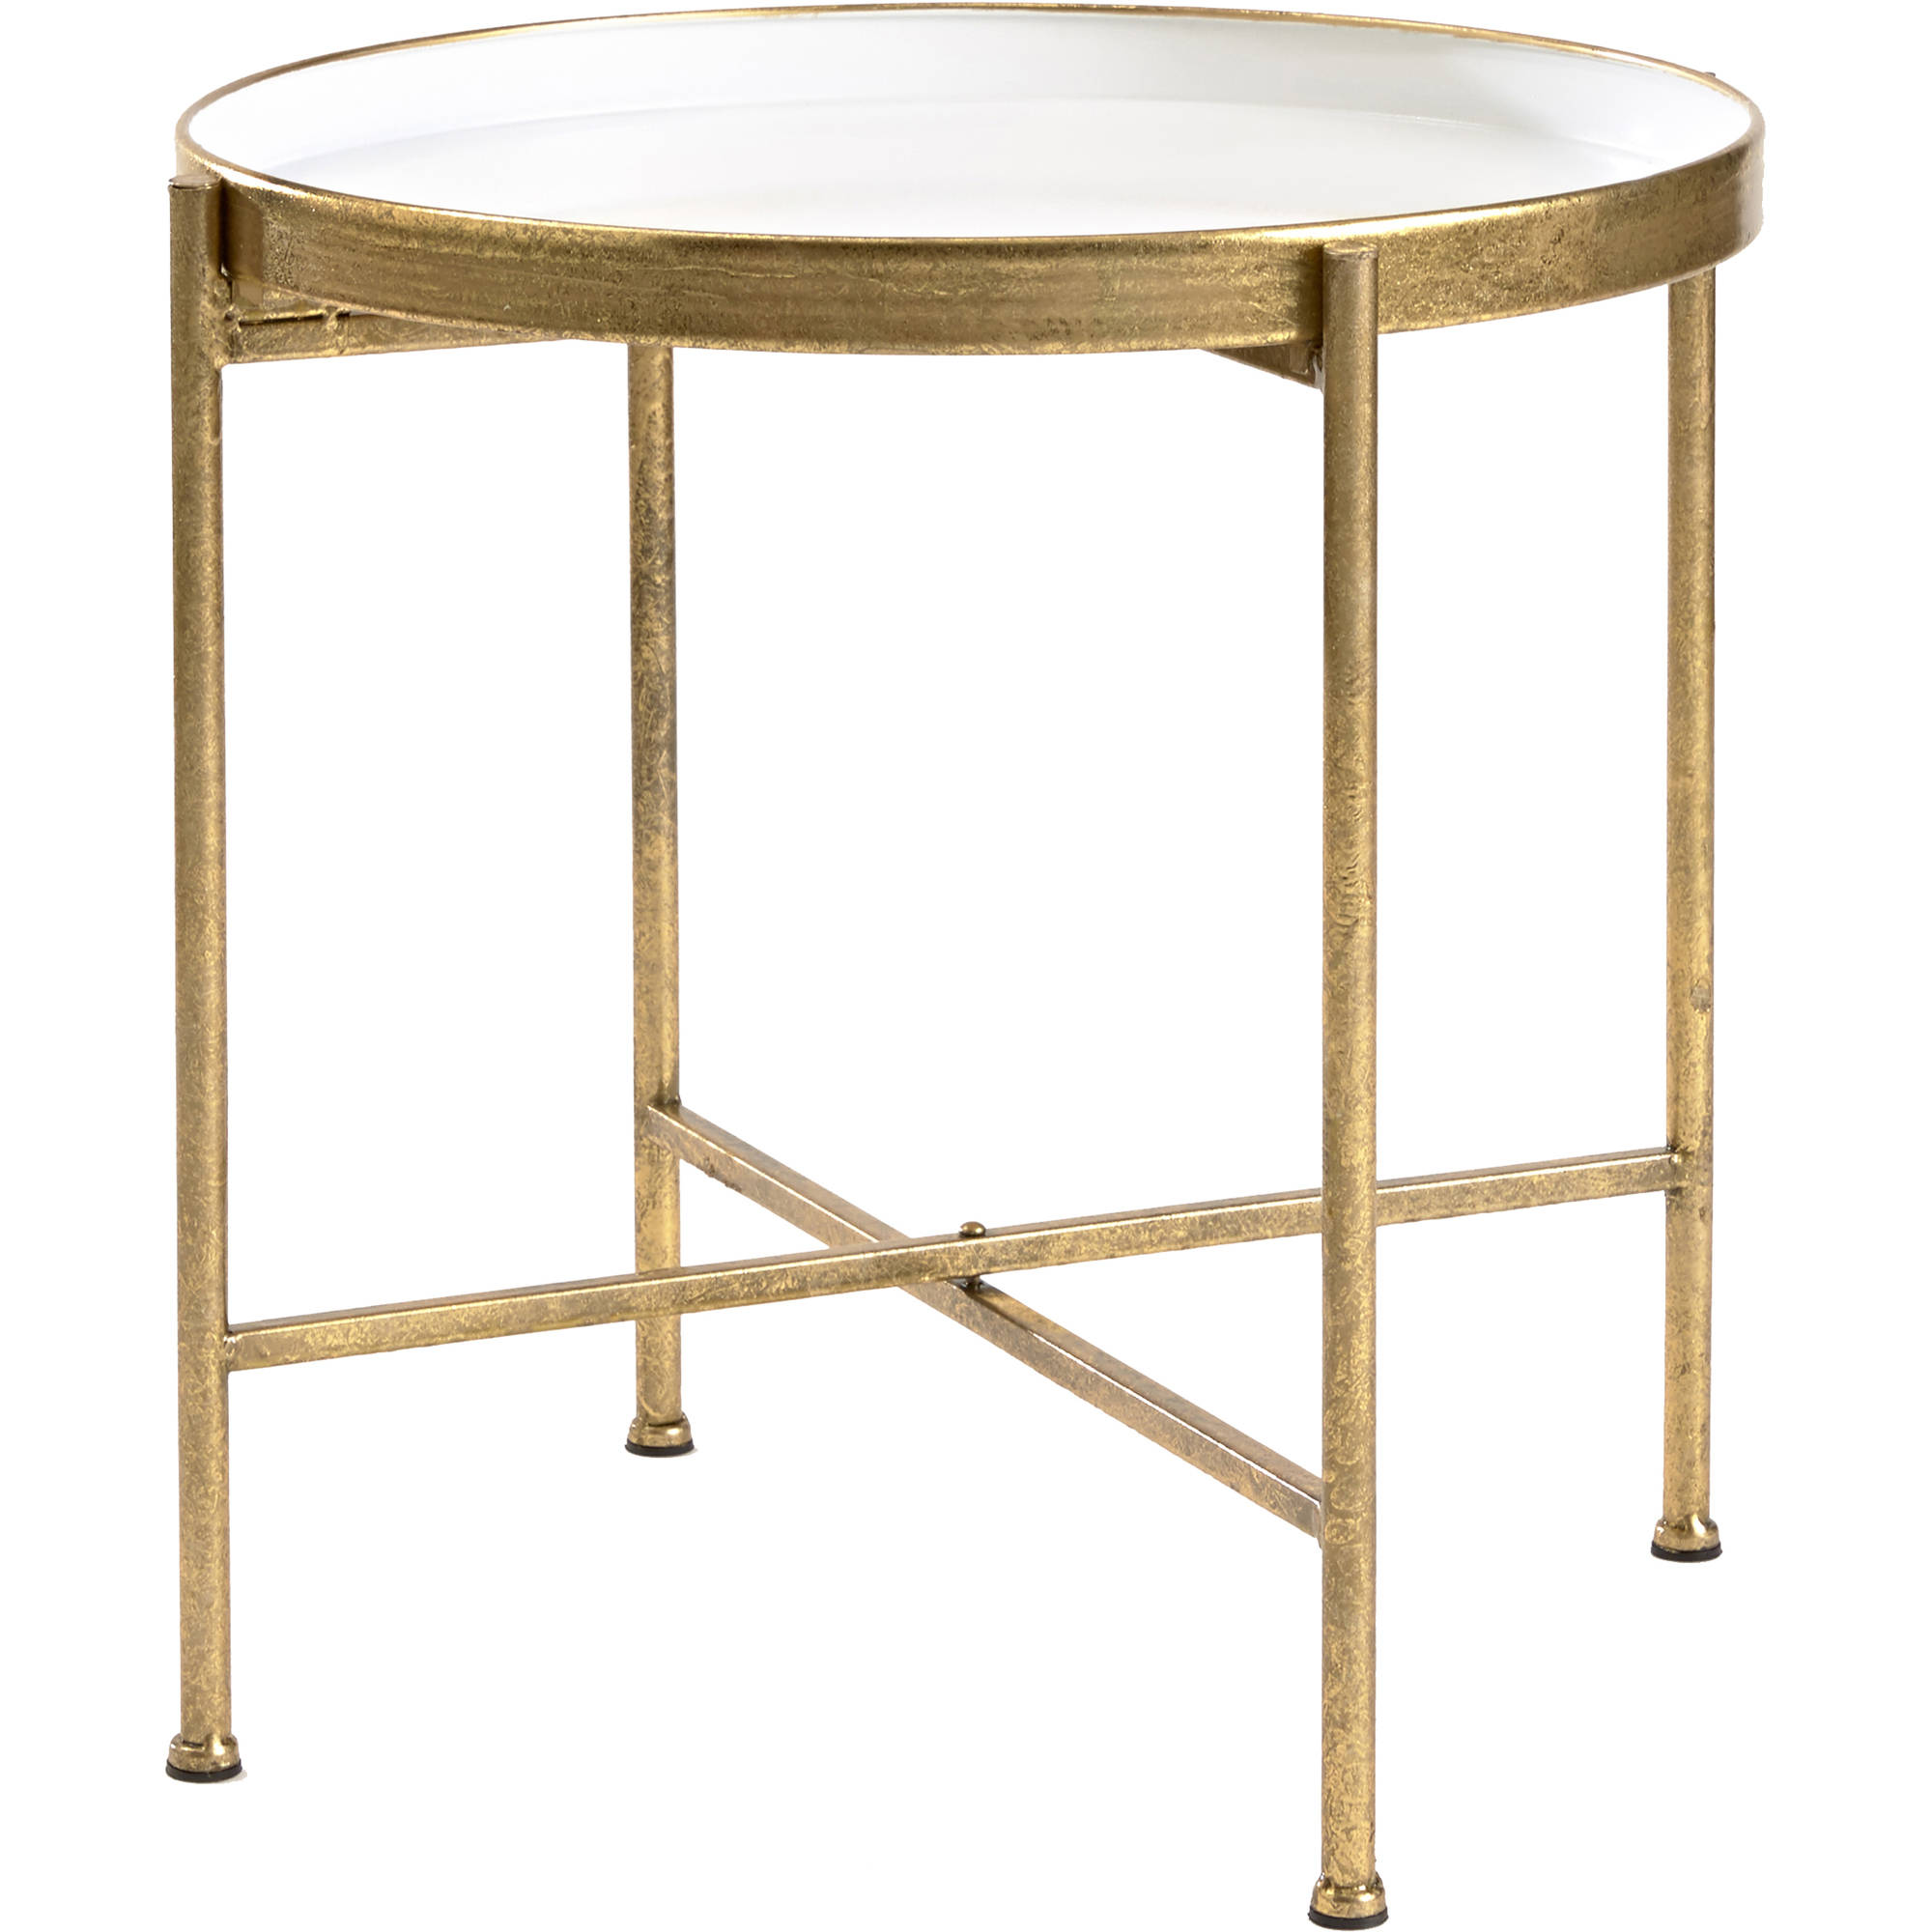 InnerSpace Large Gild Pop Up Tray Table by Generic